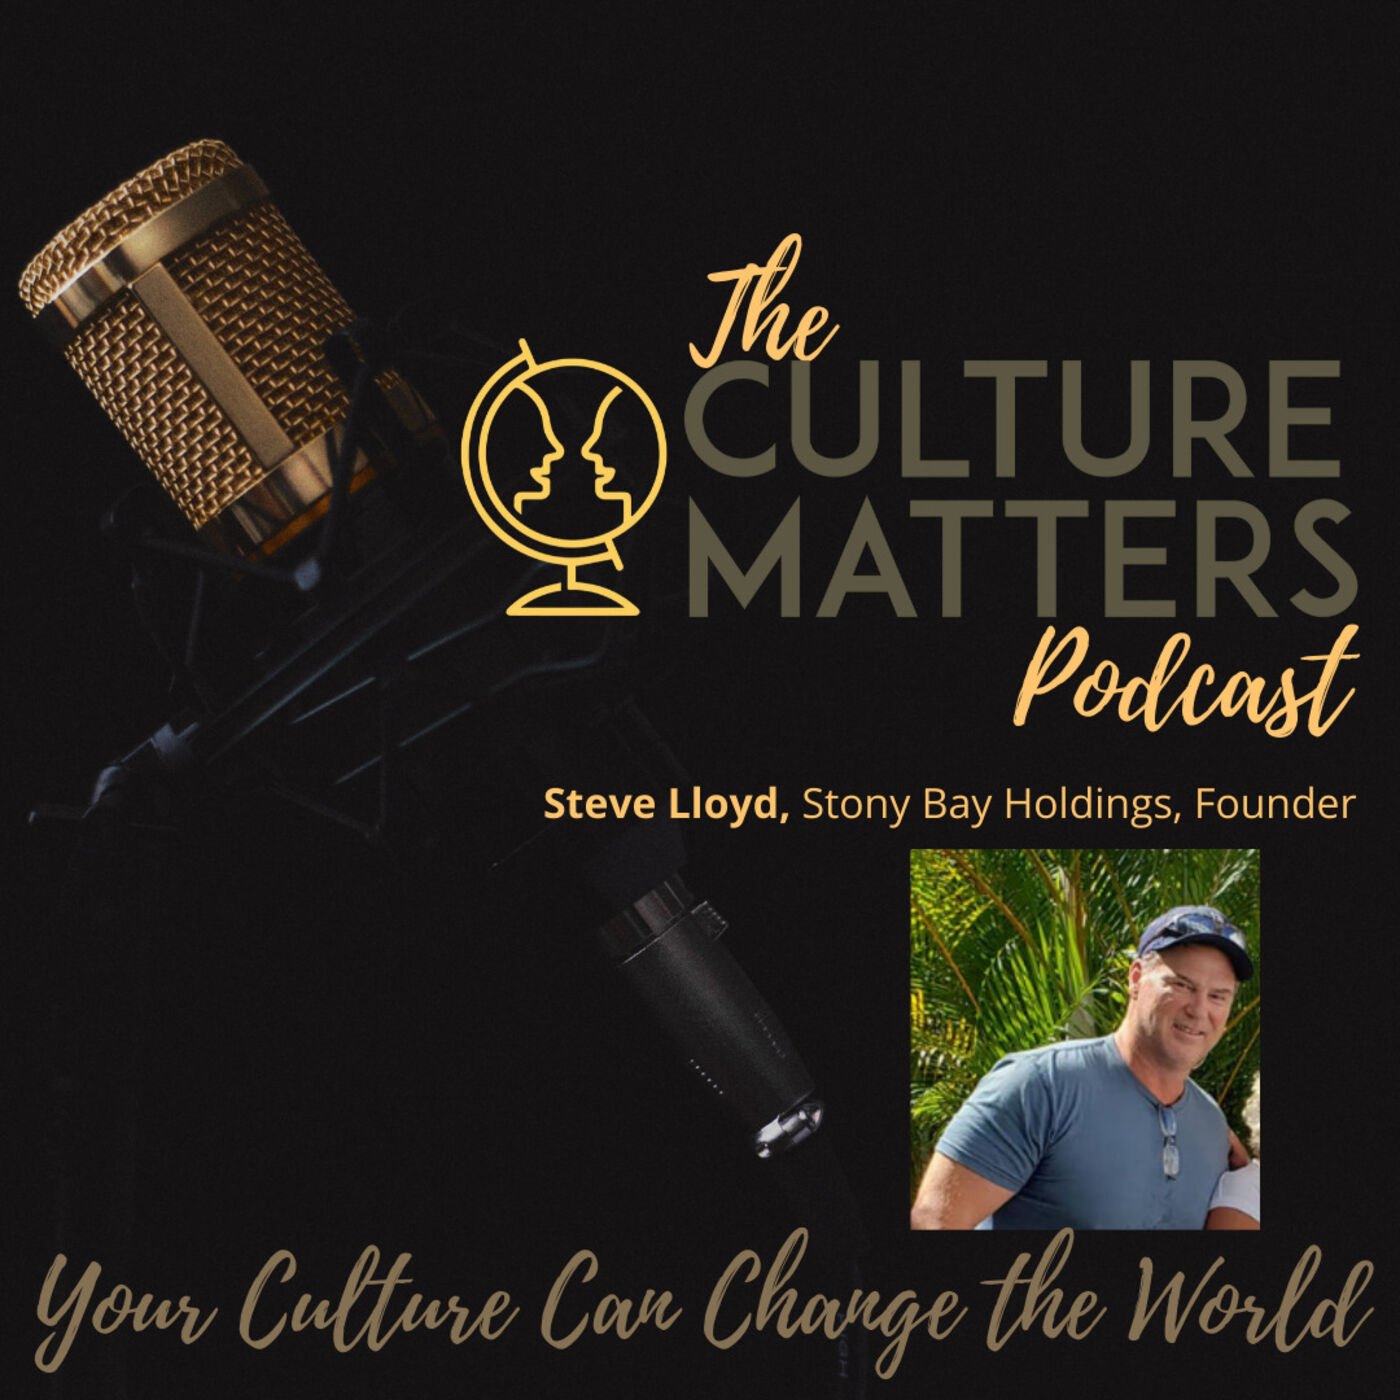 Season 6, Episode 71: Guest: Steven Lloyd: Your Personal Life and Your Business Life Go Hand-in-Hand